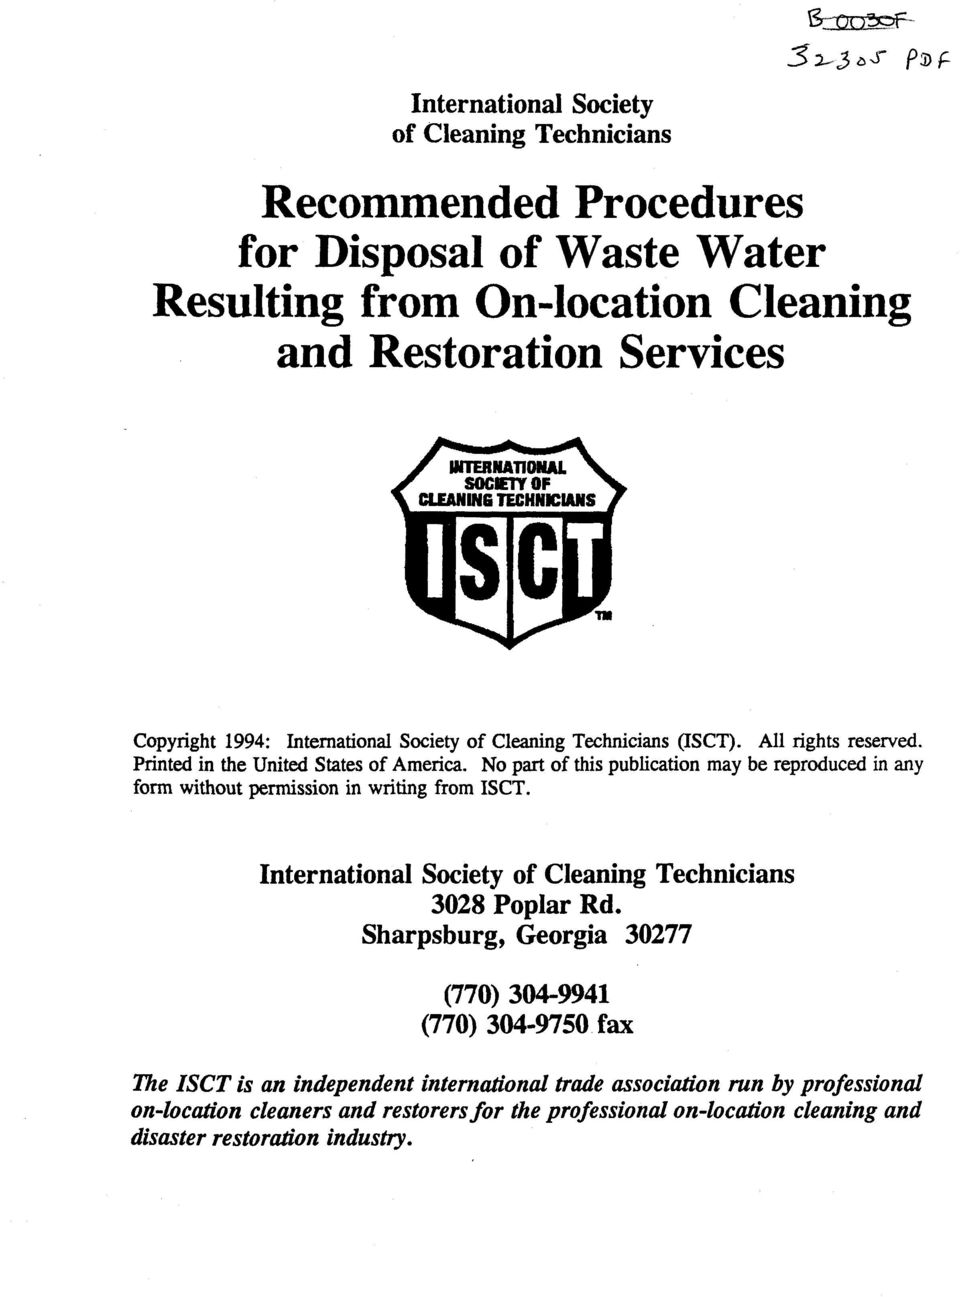 No part of this publication may be reproduced in any form without permission in writing from ISCT. International Society of Cleaning Technicians 3028 Poplar Rd.